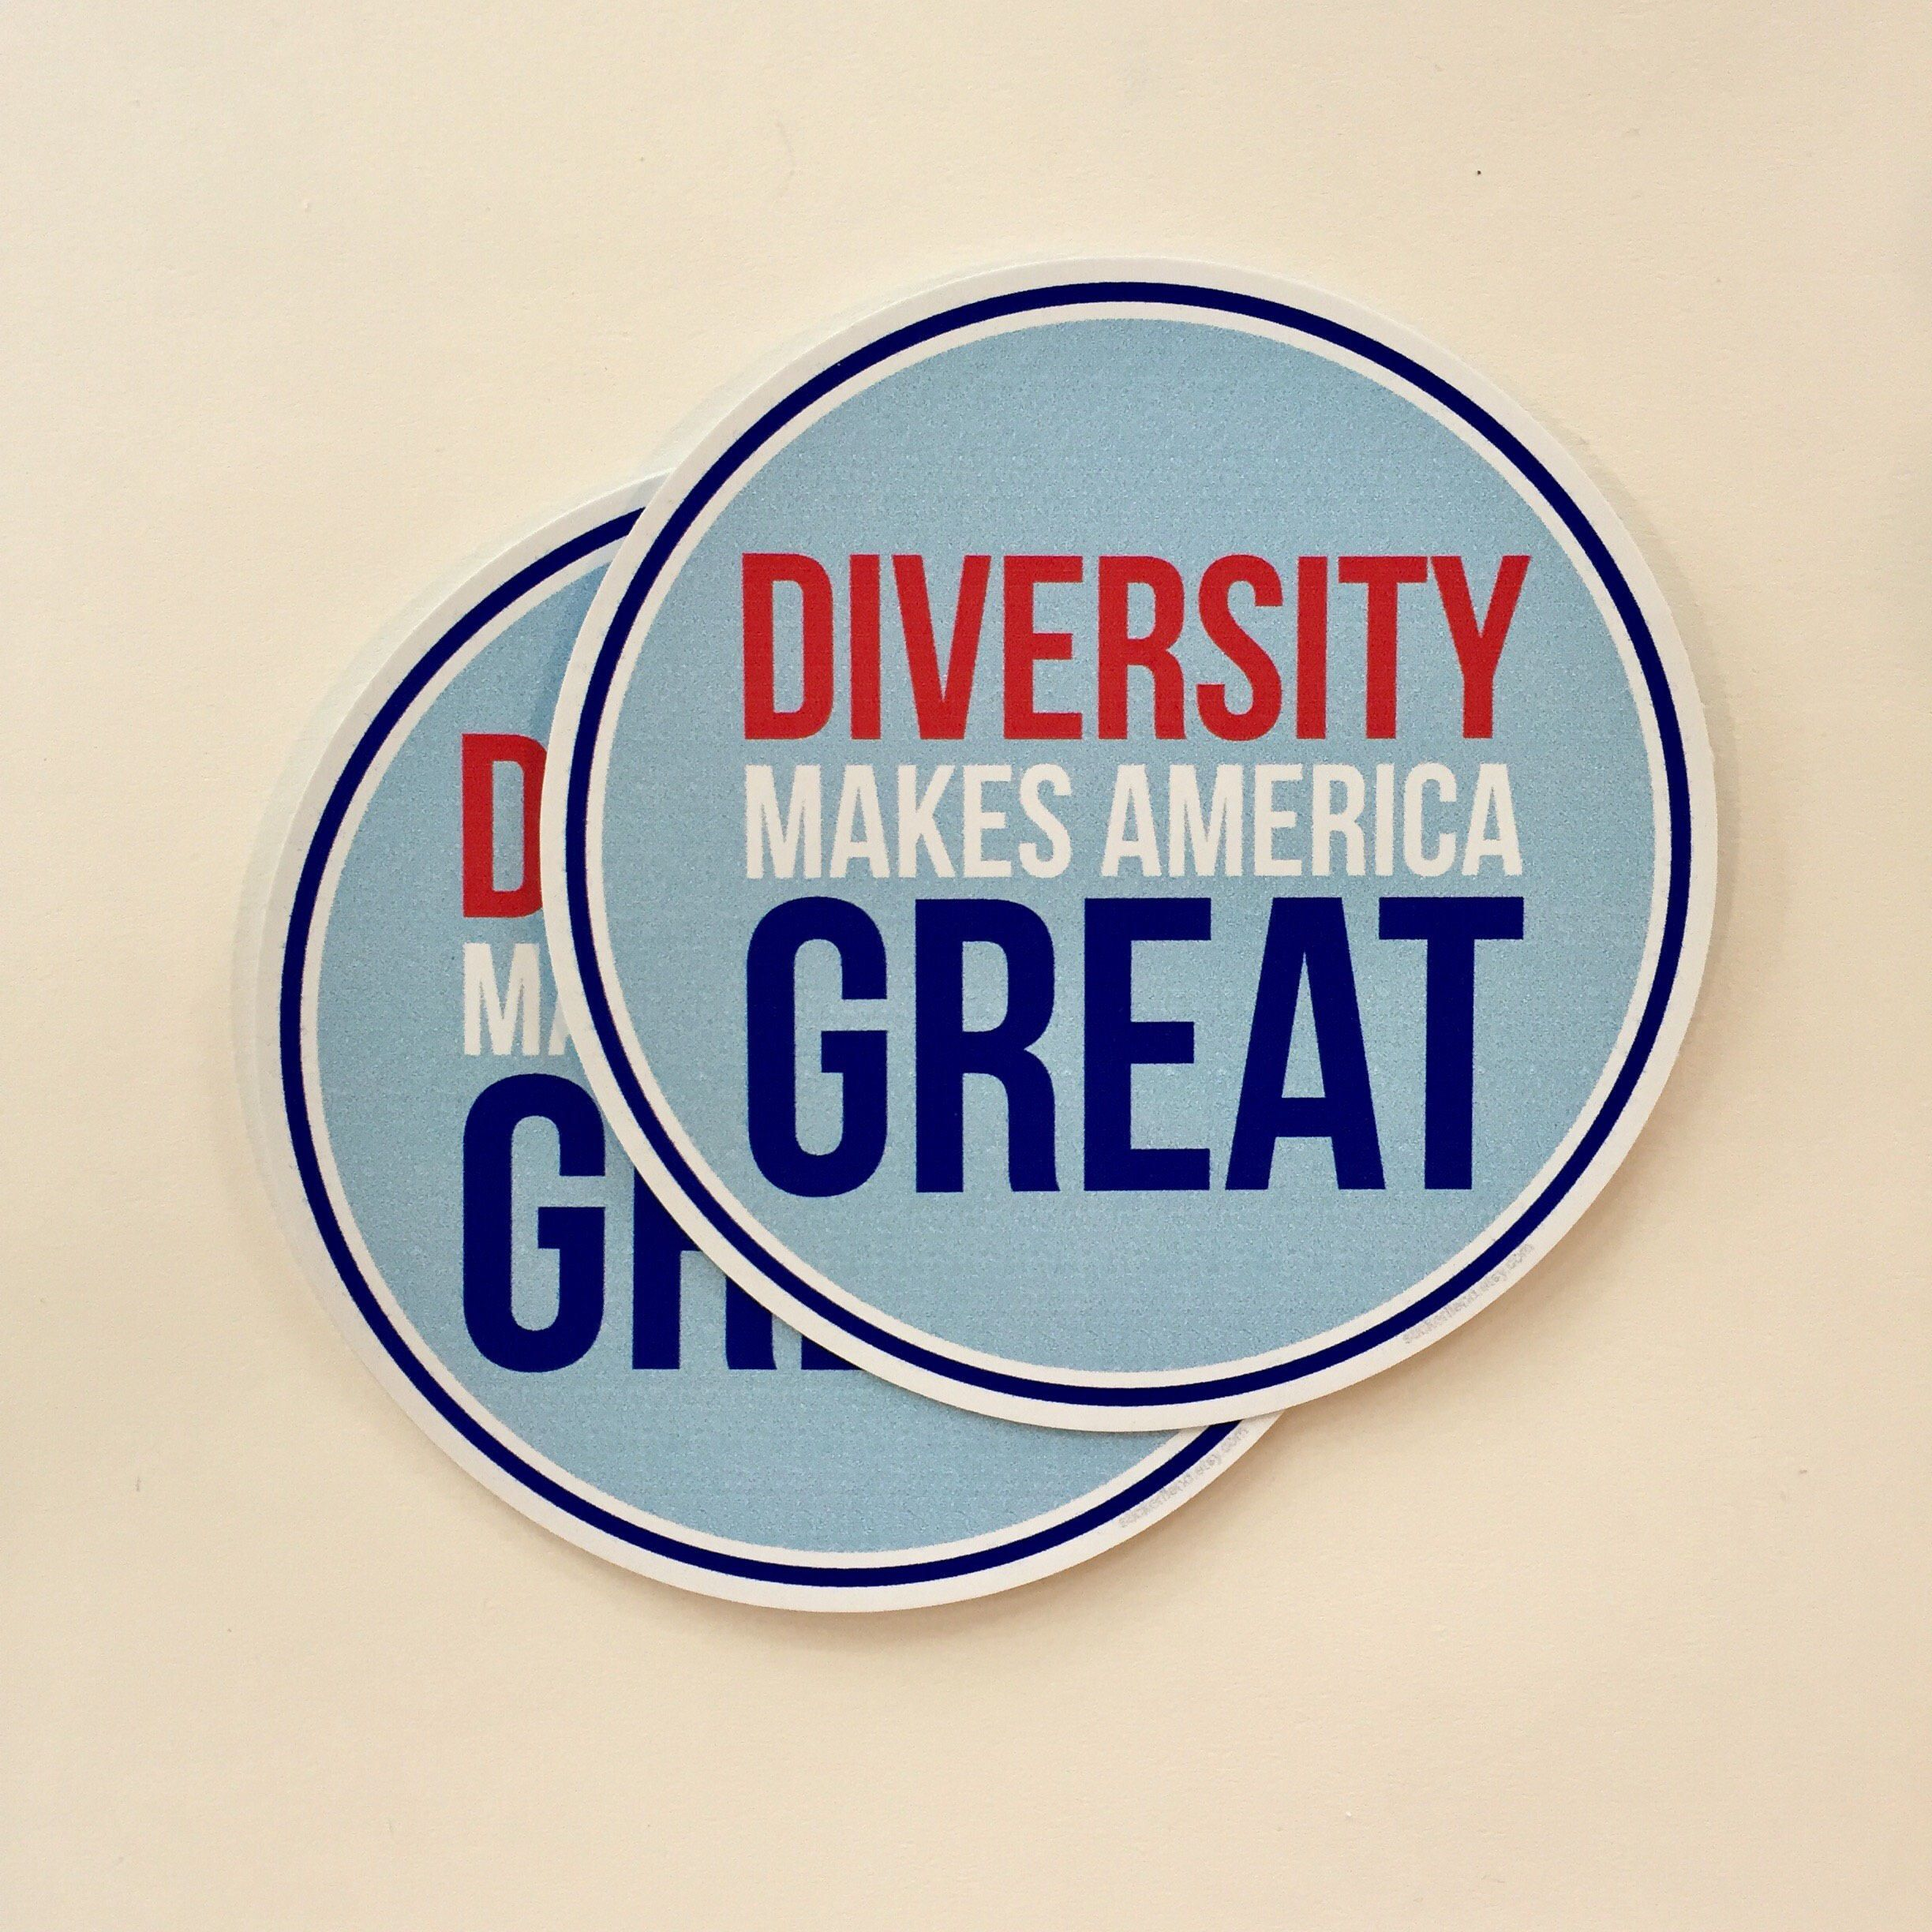 Diversity makes america great vinyl bumper sticker laptop decal waterproof sticker laptop decal water bottle sticker